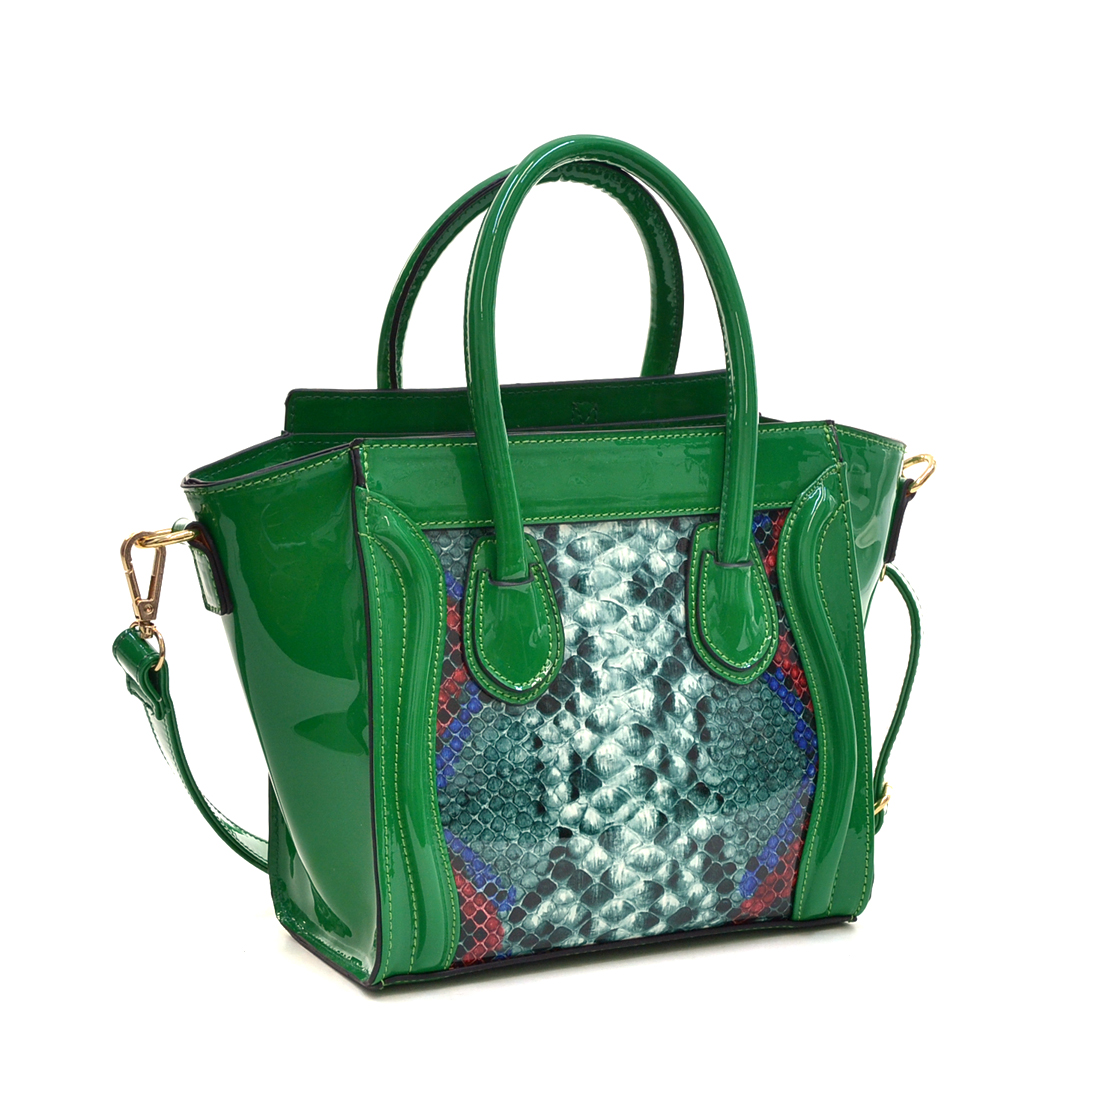 Patent Faux Leather with Snakeskin Detail Satchel